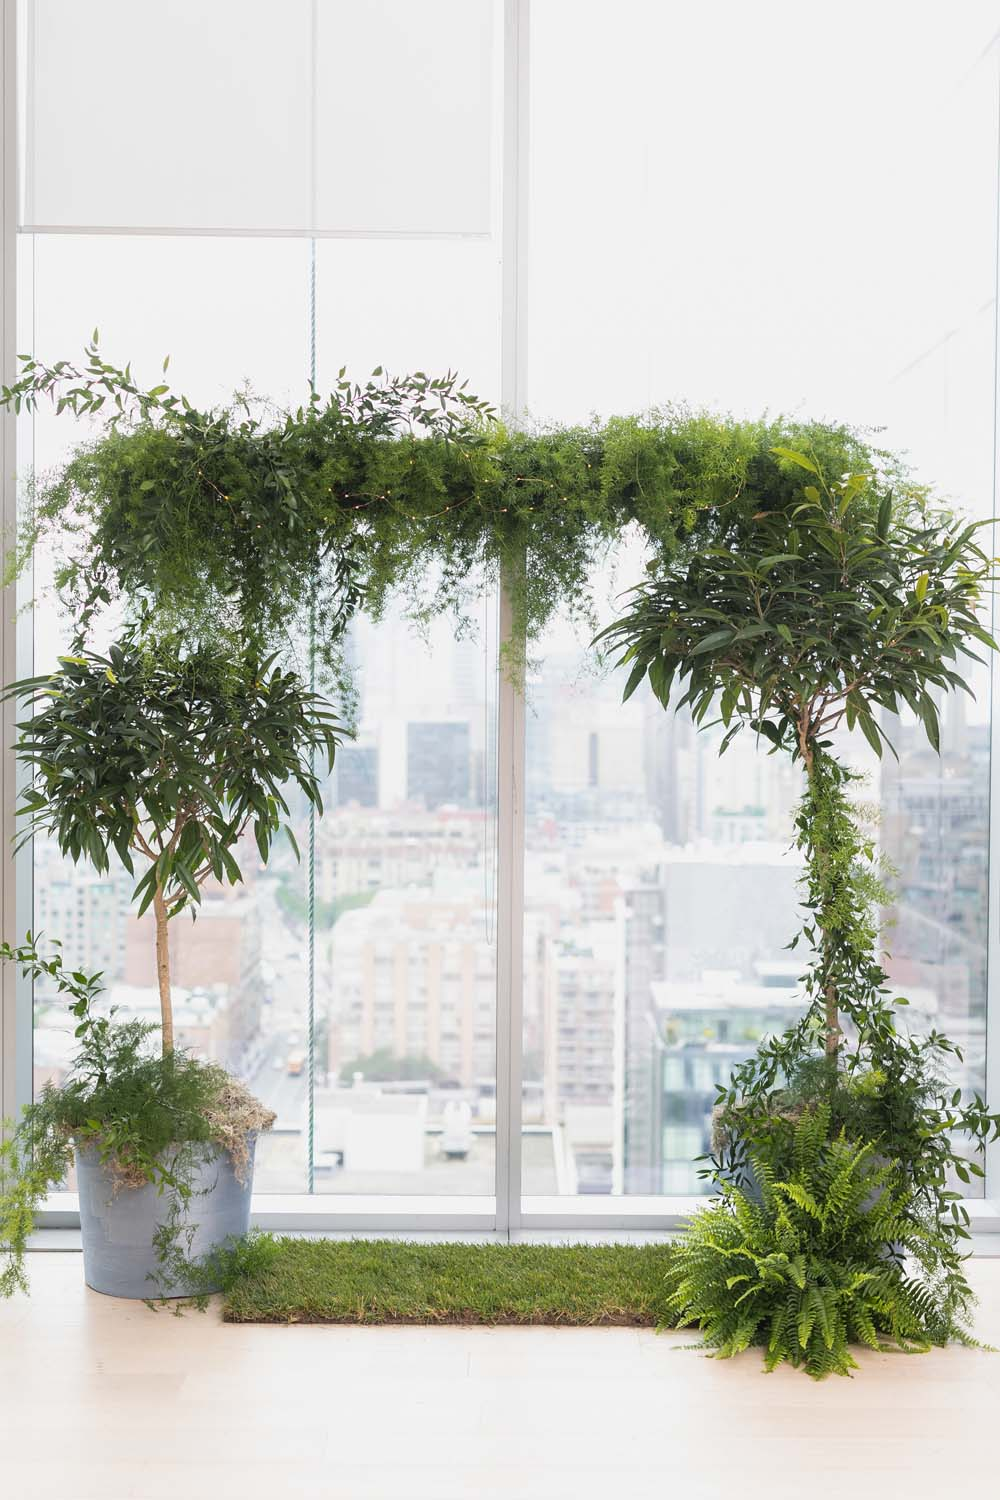 This Toronto Wedding Brings Nature to the City - Greenery